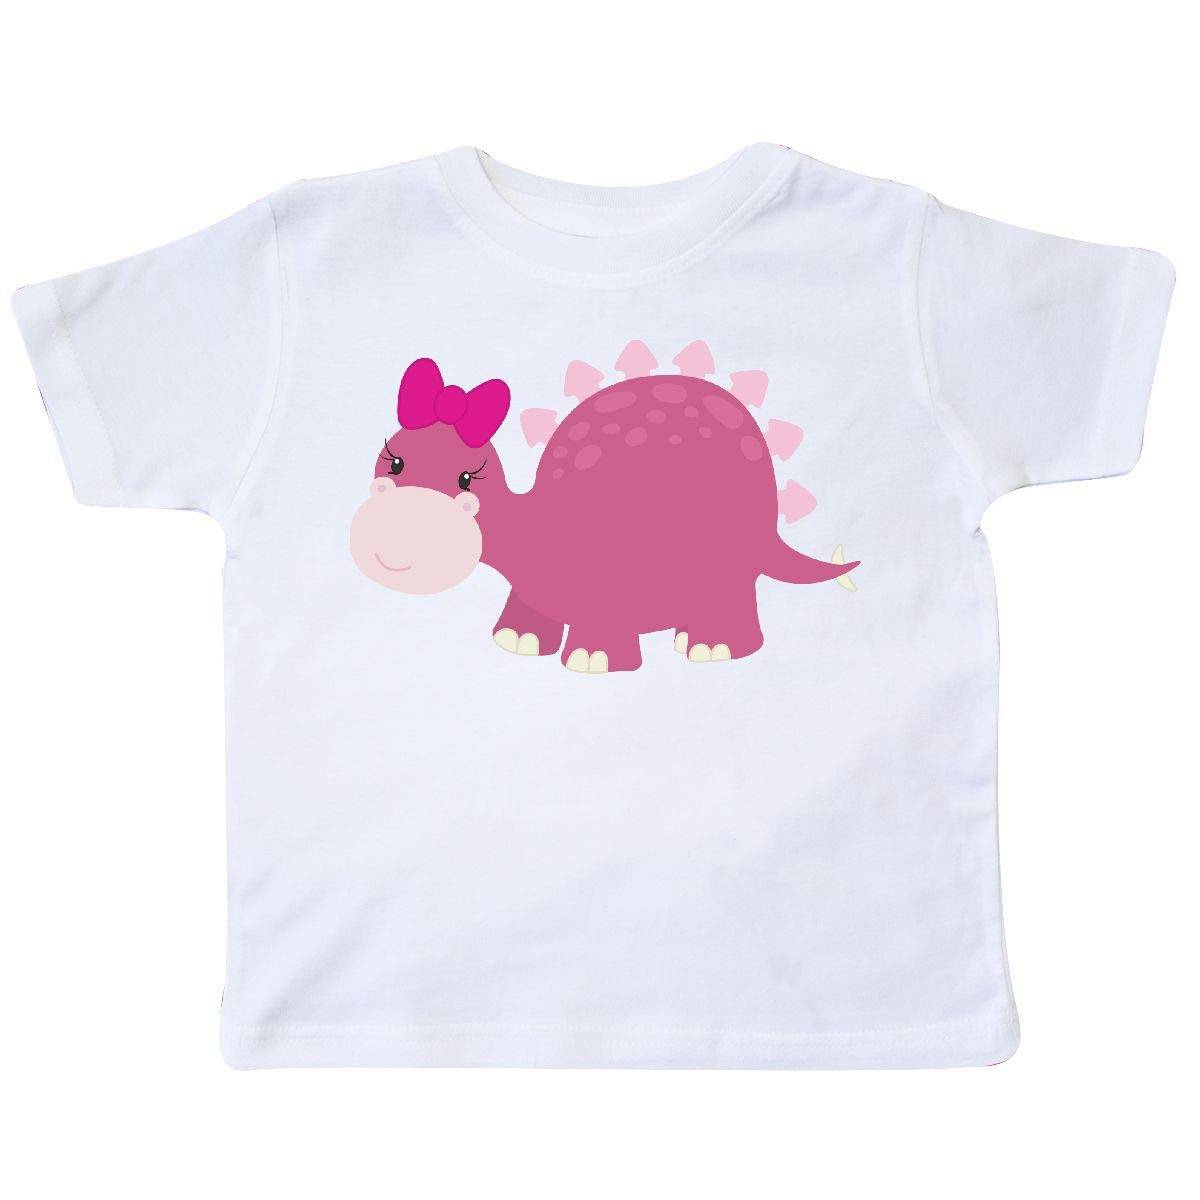 inktastic Cute Pink Dinosaur with Bow Toddler T-Shirt